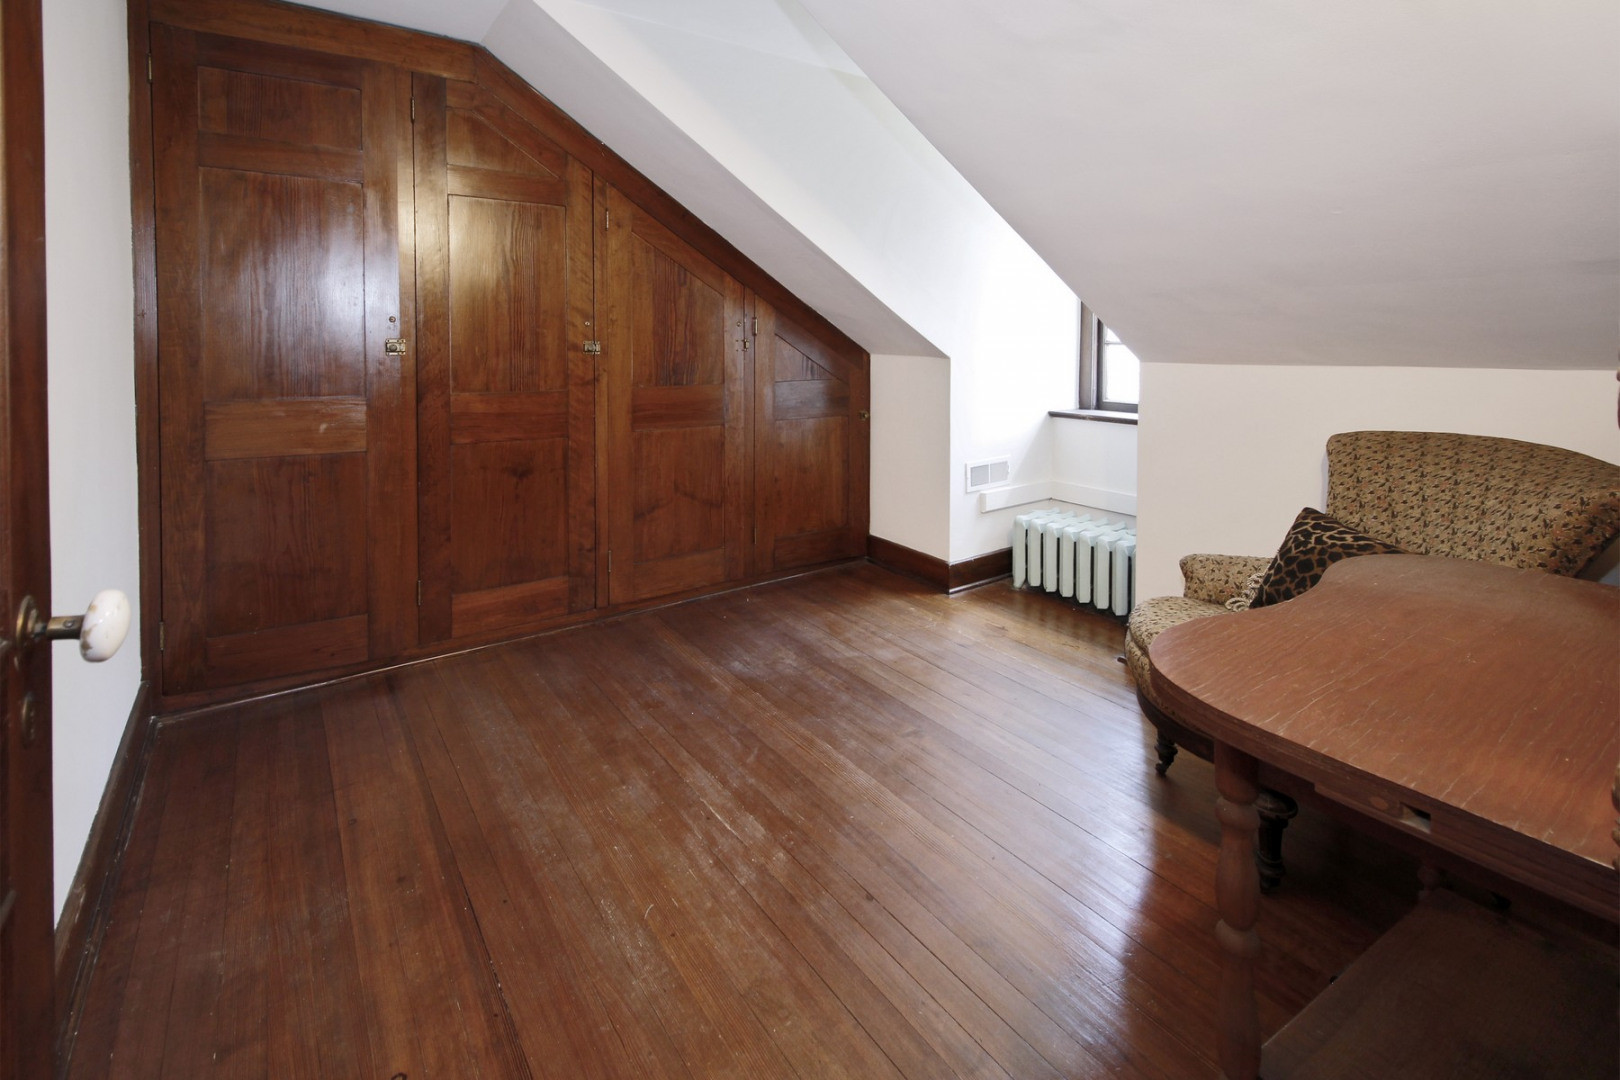 hardwood floors fairfield ct of 111 lookout fairfield ct for sale william pitt sothebys realty in 13198149 9565212 3rd floor office